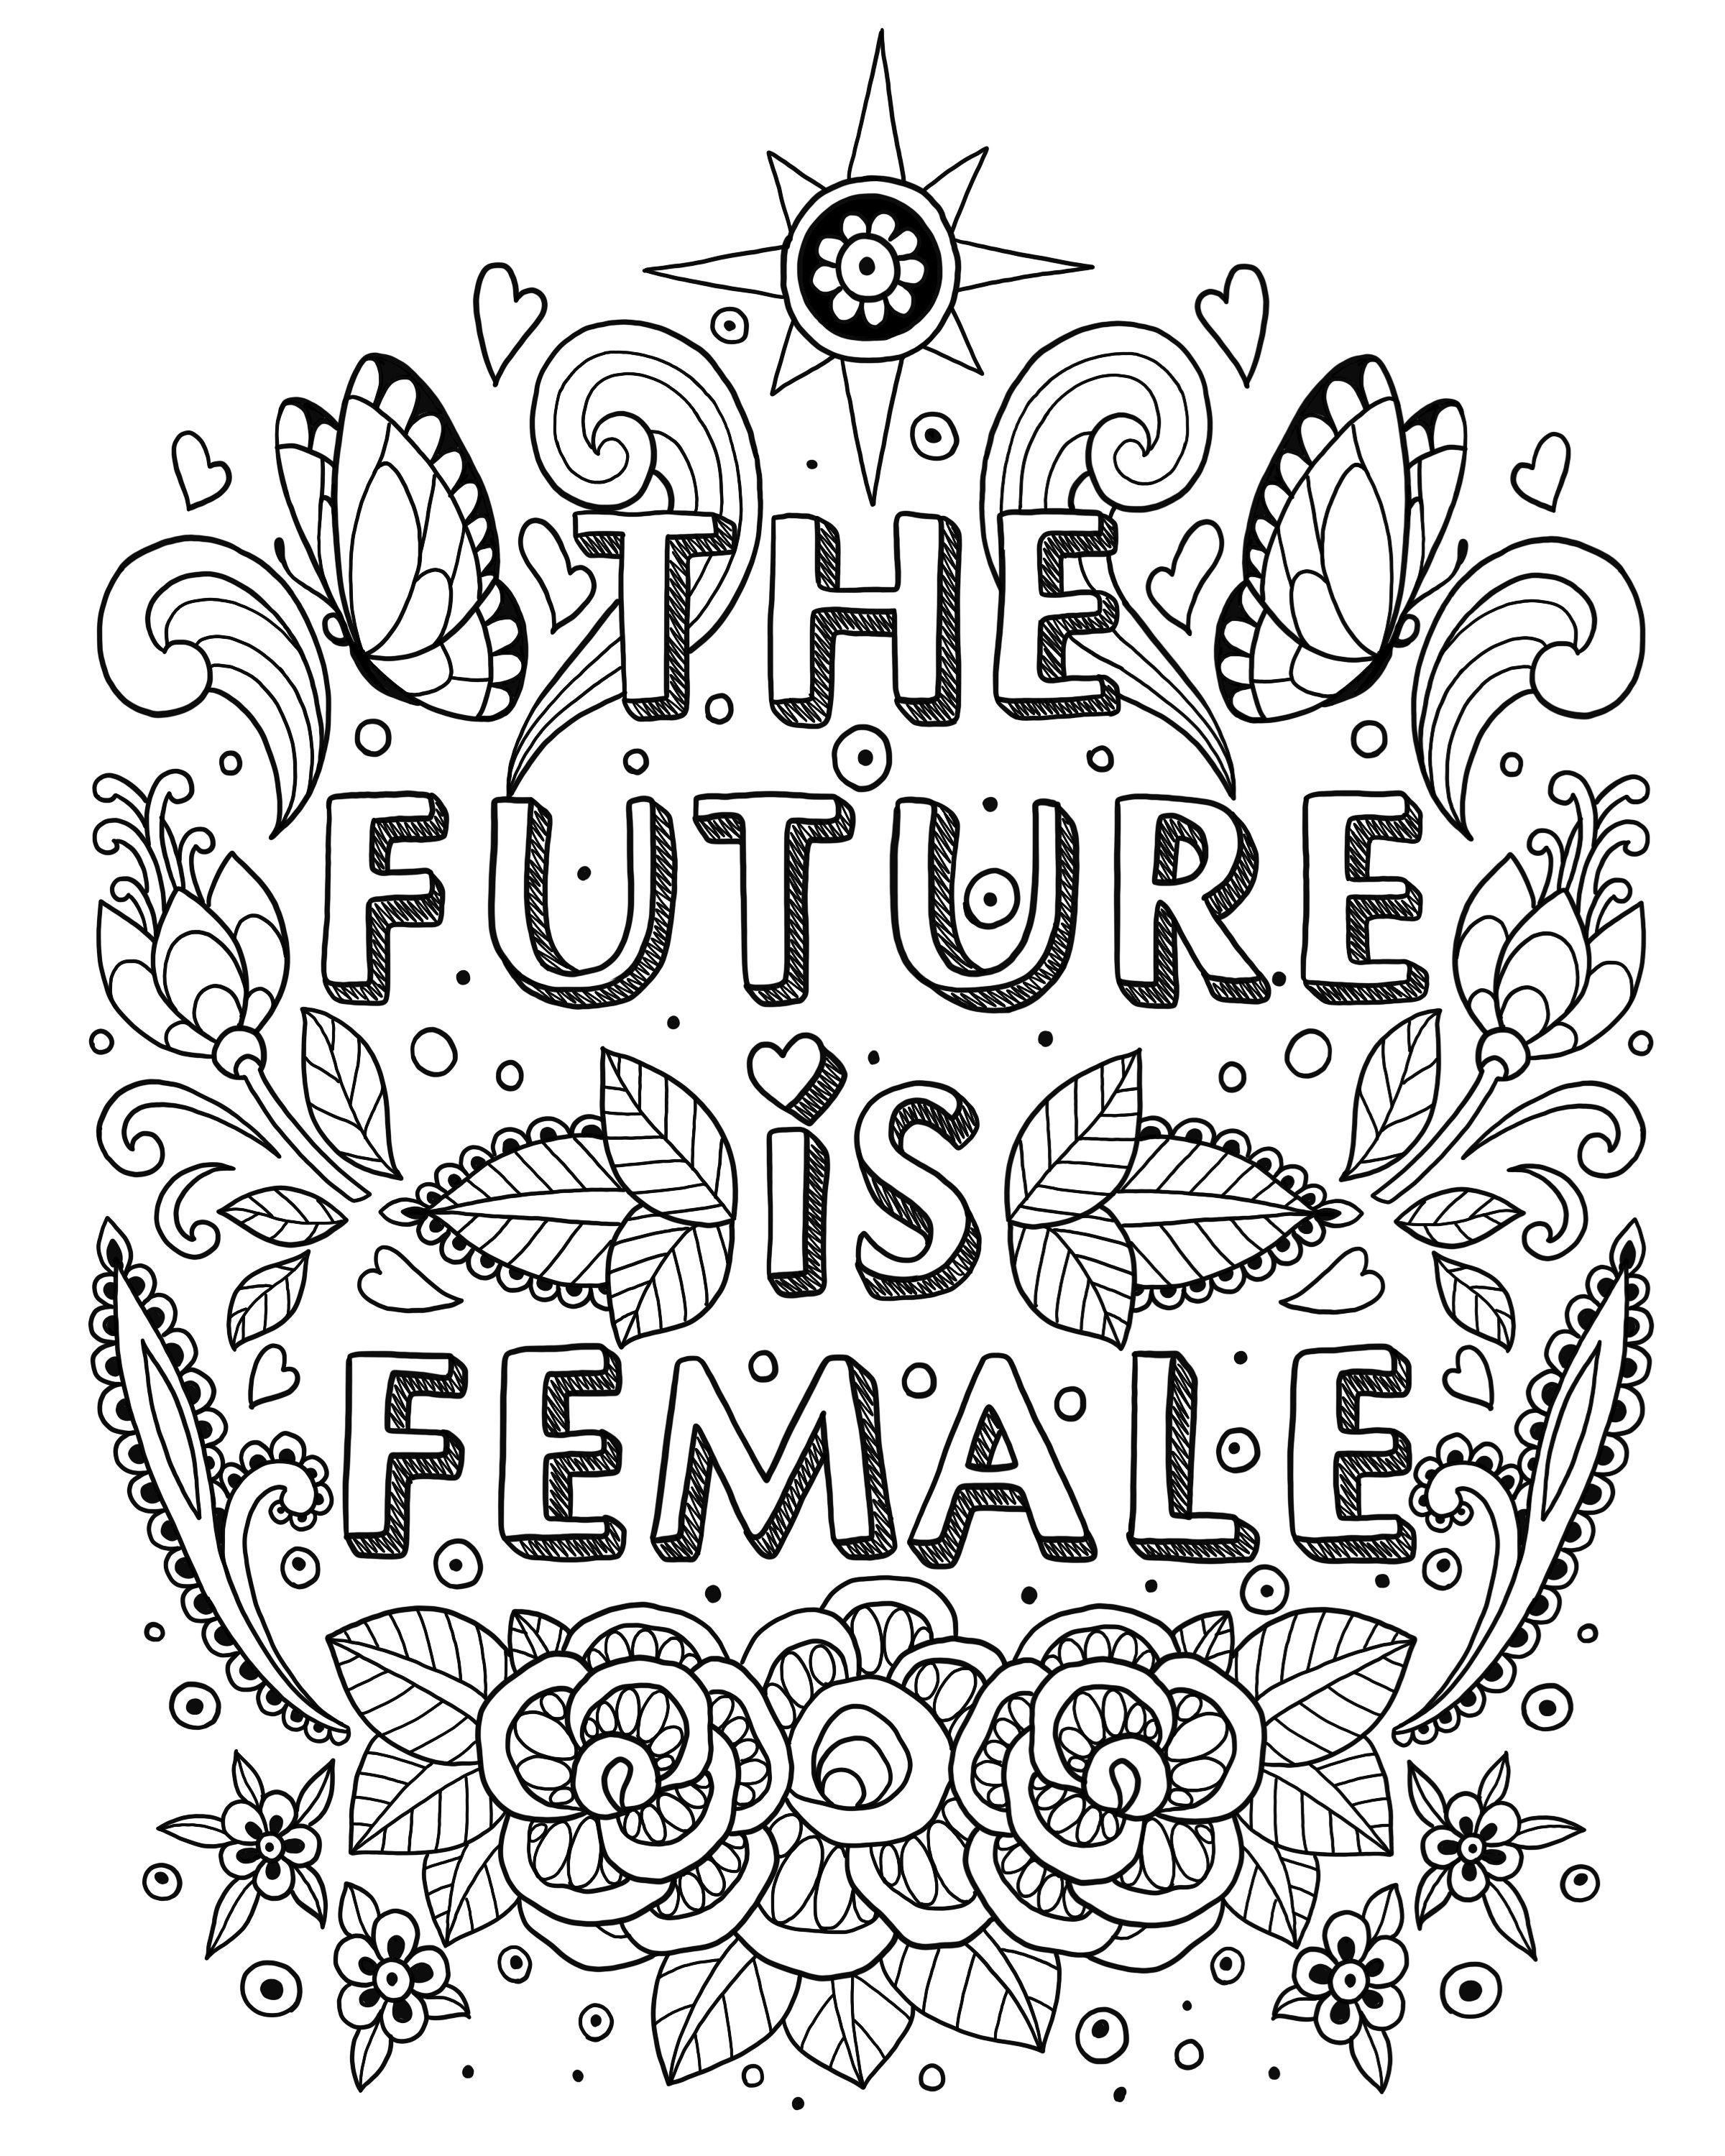 Free Coloring Pages. The Future is Female. #